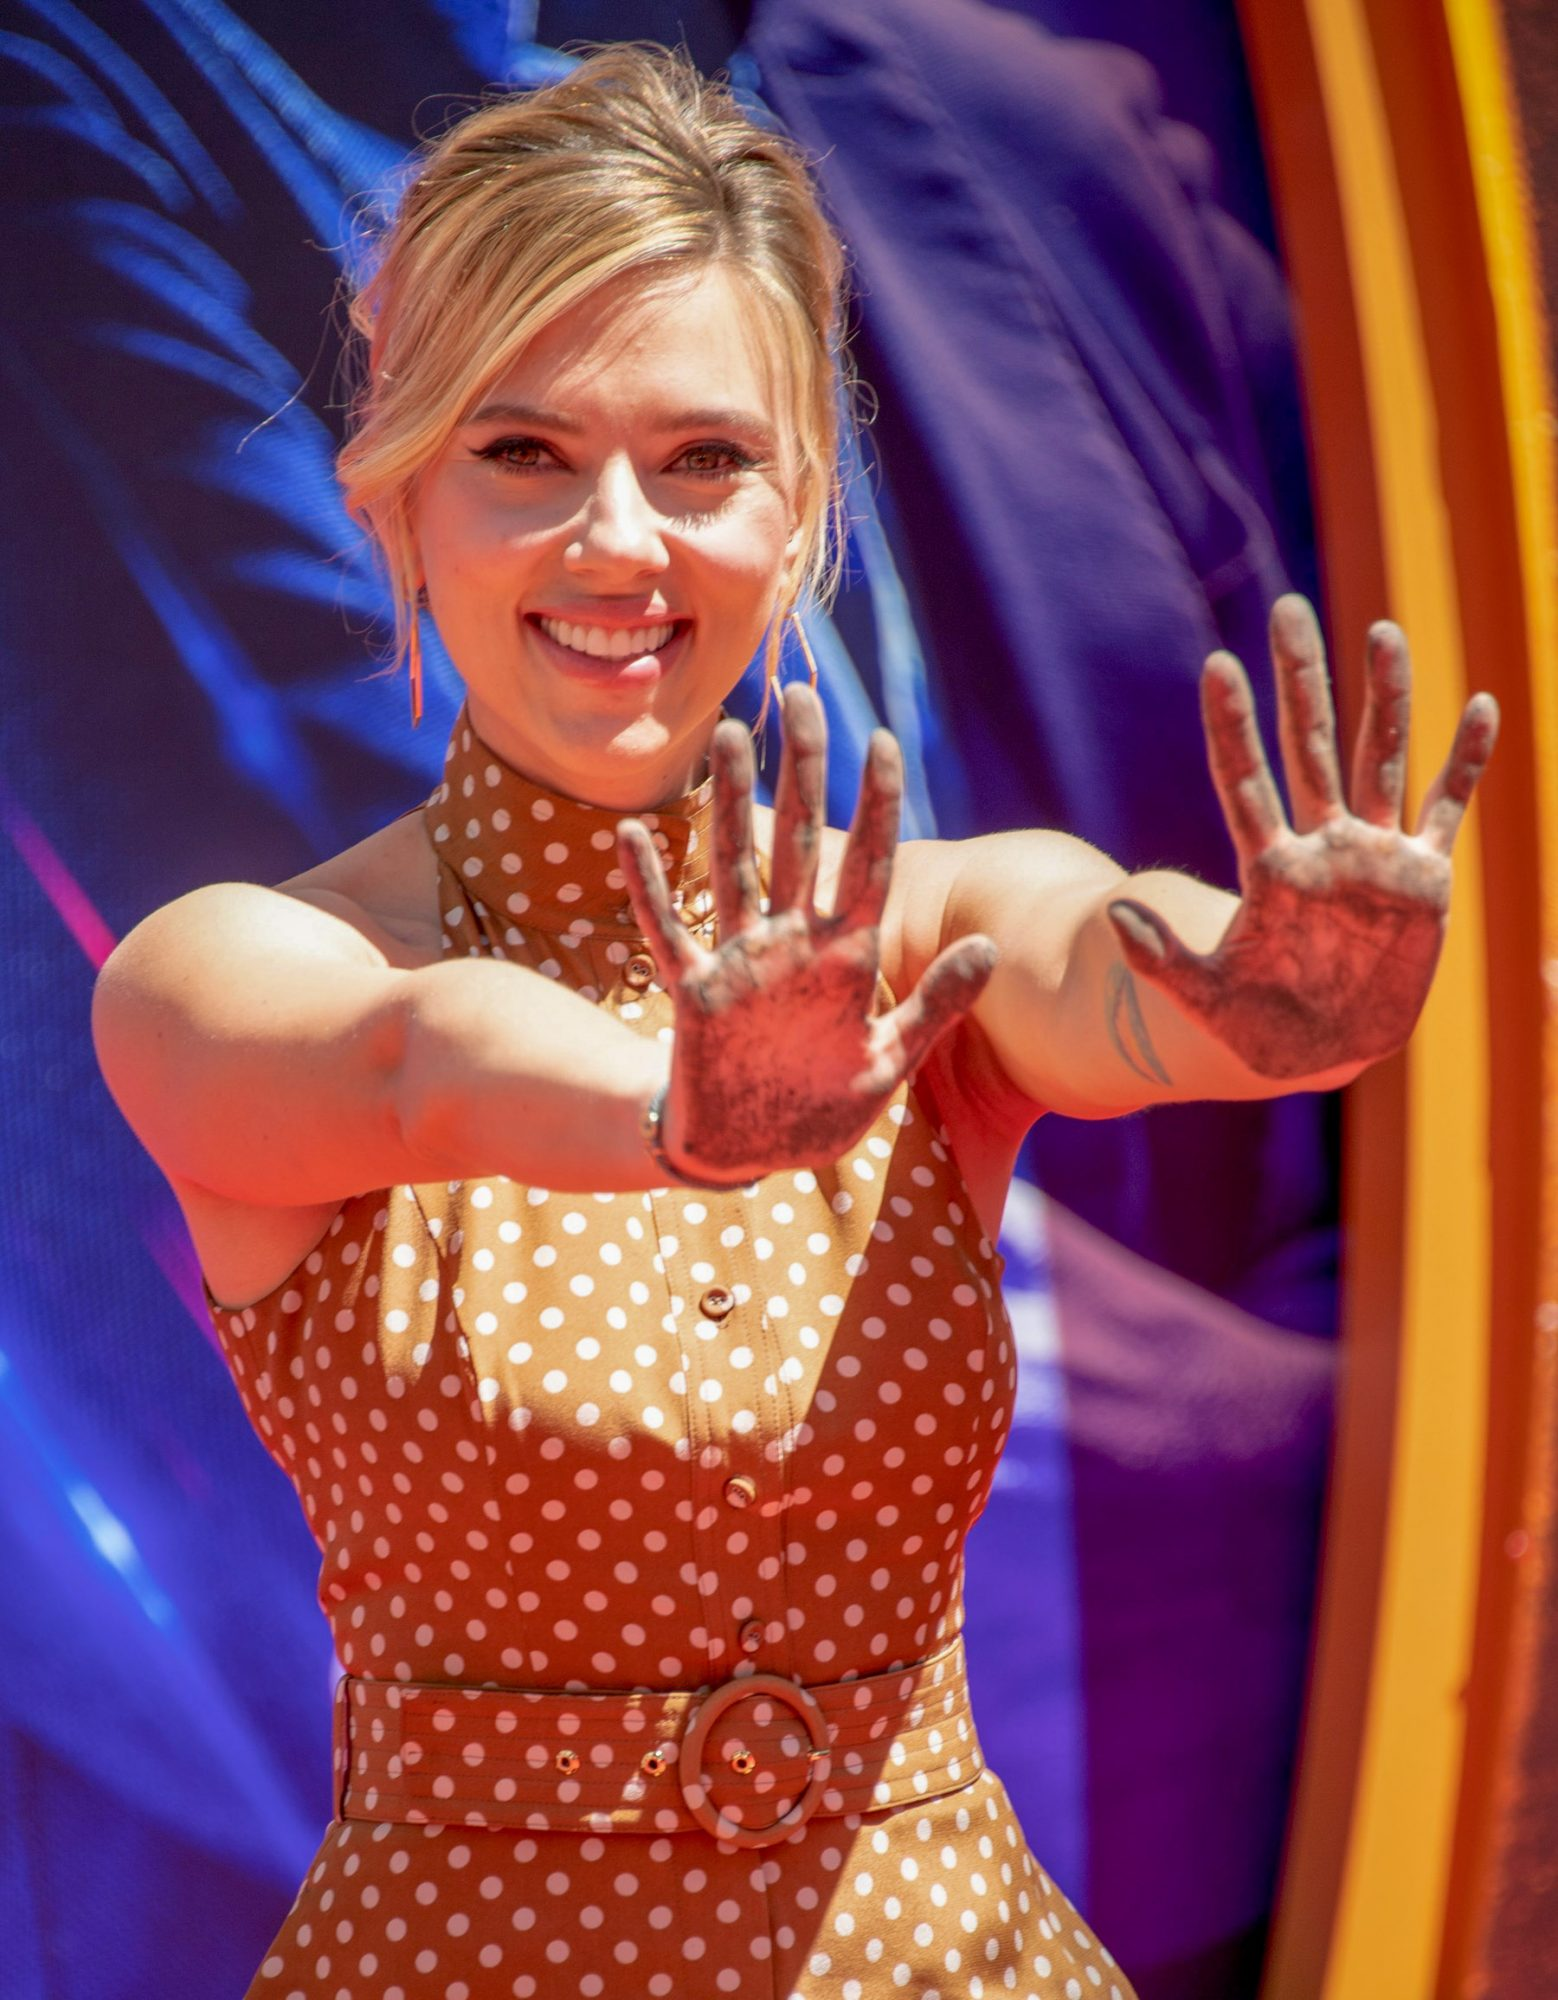 Actress Scarlett Johansson attends the Marvel Studios' 'Avengers: Endgame' cast place their hand prints in cement at TCL Chinese Theatre IMAX Forecourt on April 23, 2019, in Hollywood, California. (Photo by VALERIE MACON / AFP) (Photo credit should read VALERIE MACON/AFP/Getty Images)